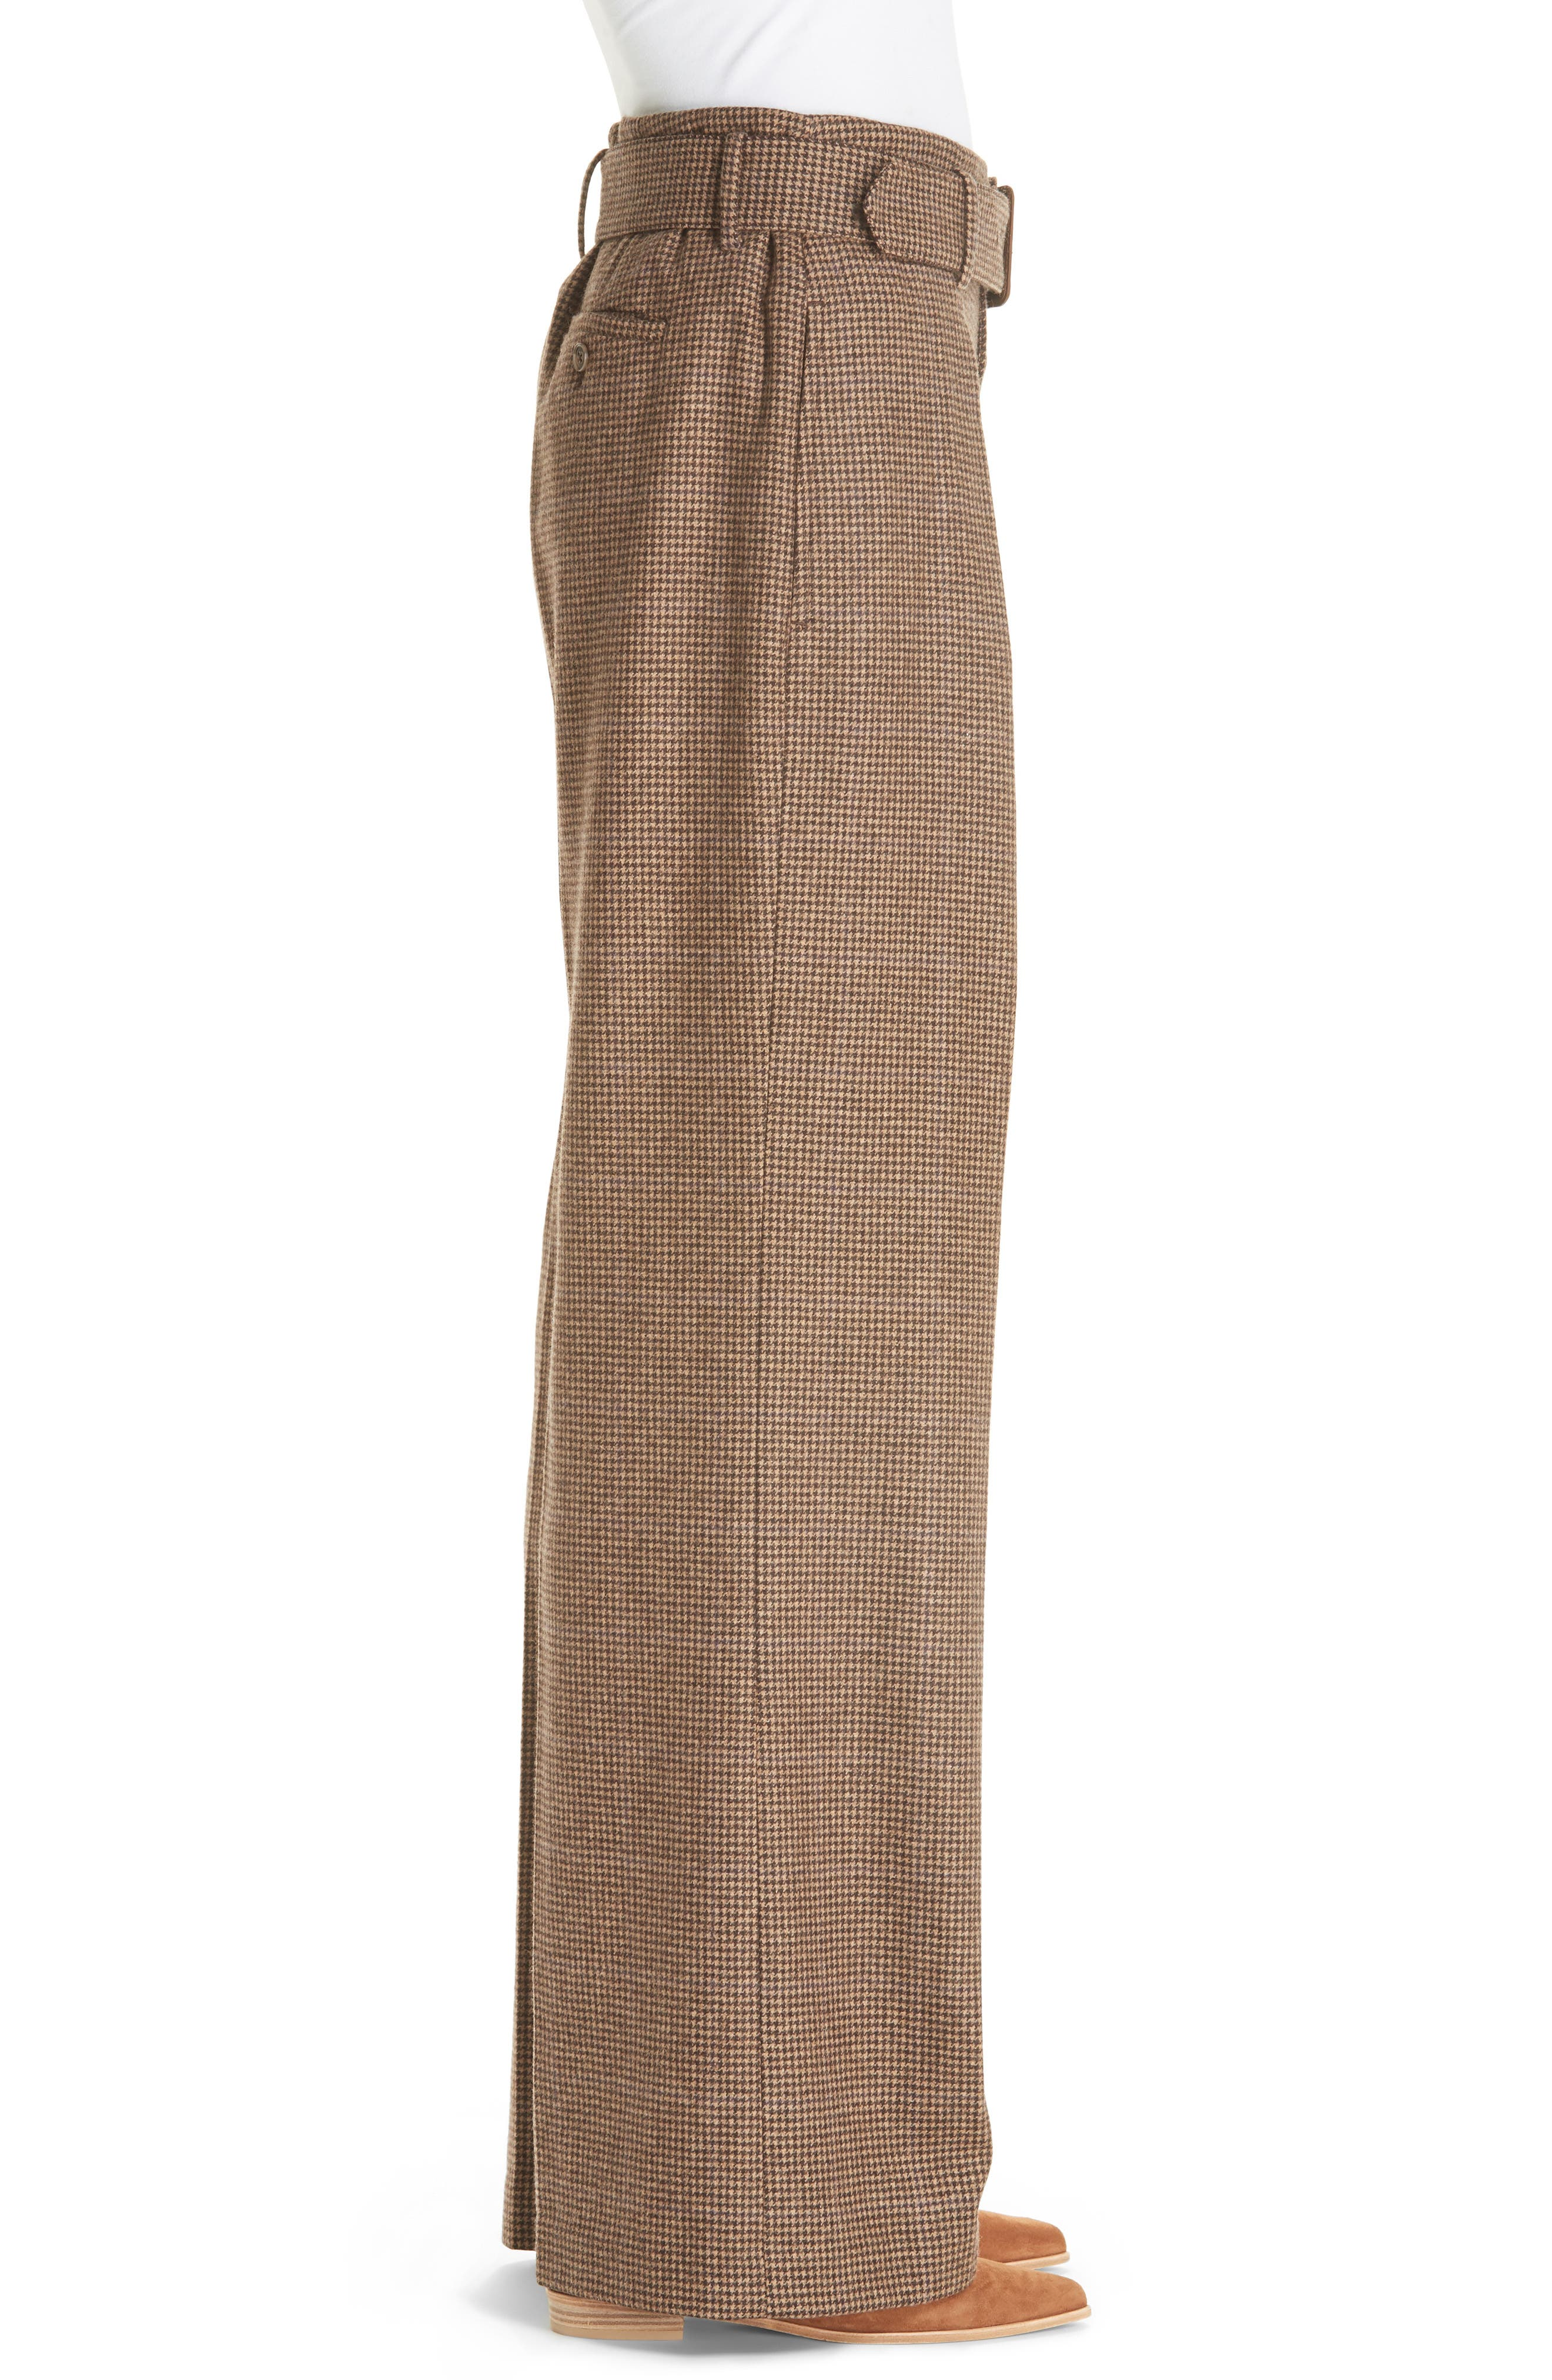 Relaxed Wide Leg Tweed Pants,                             Alternate thumbnail 3, color,                             200